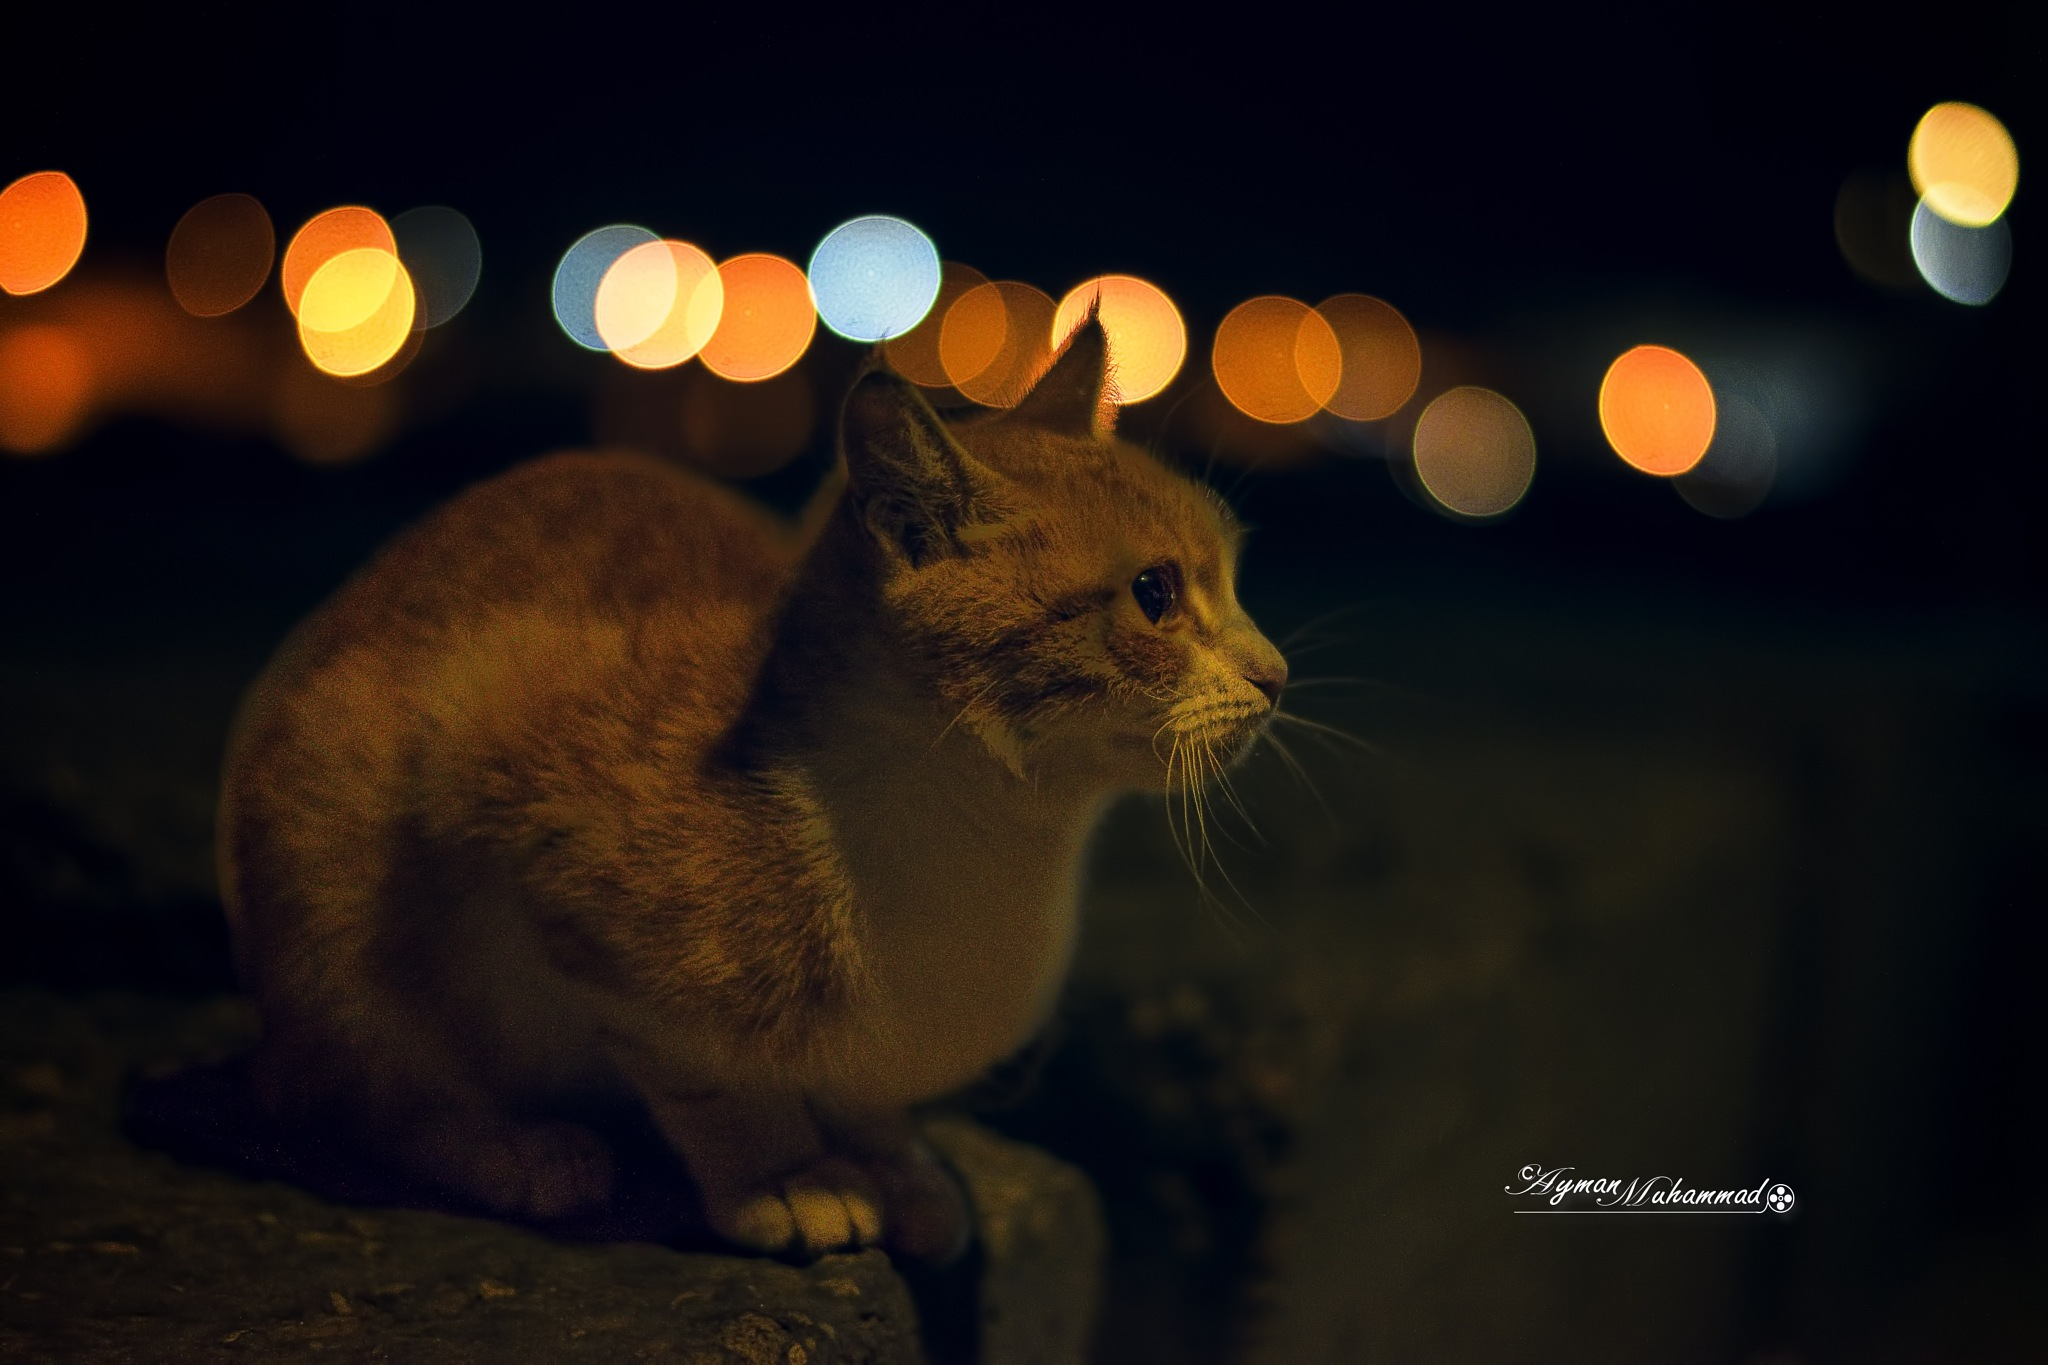 Cute Seaside Kitty at night by AymanMuhammad